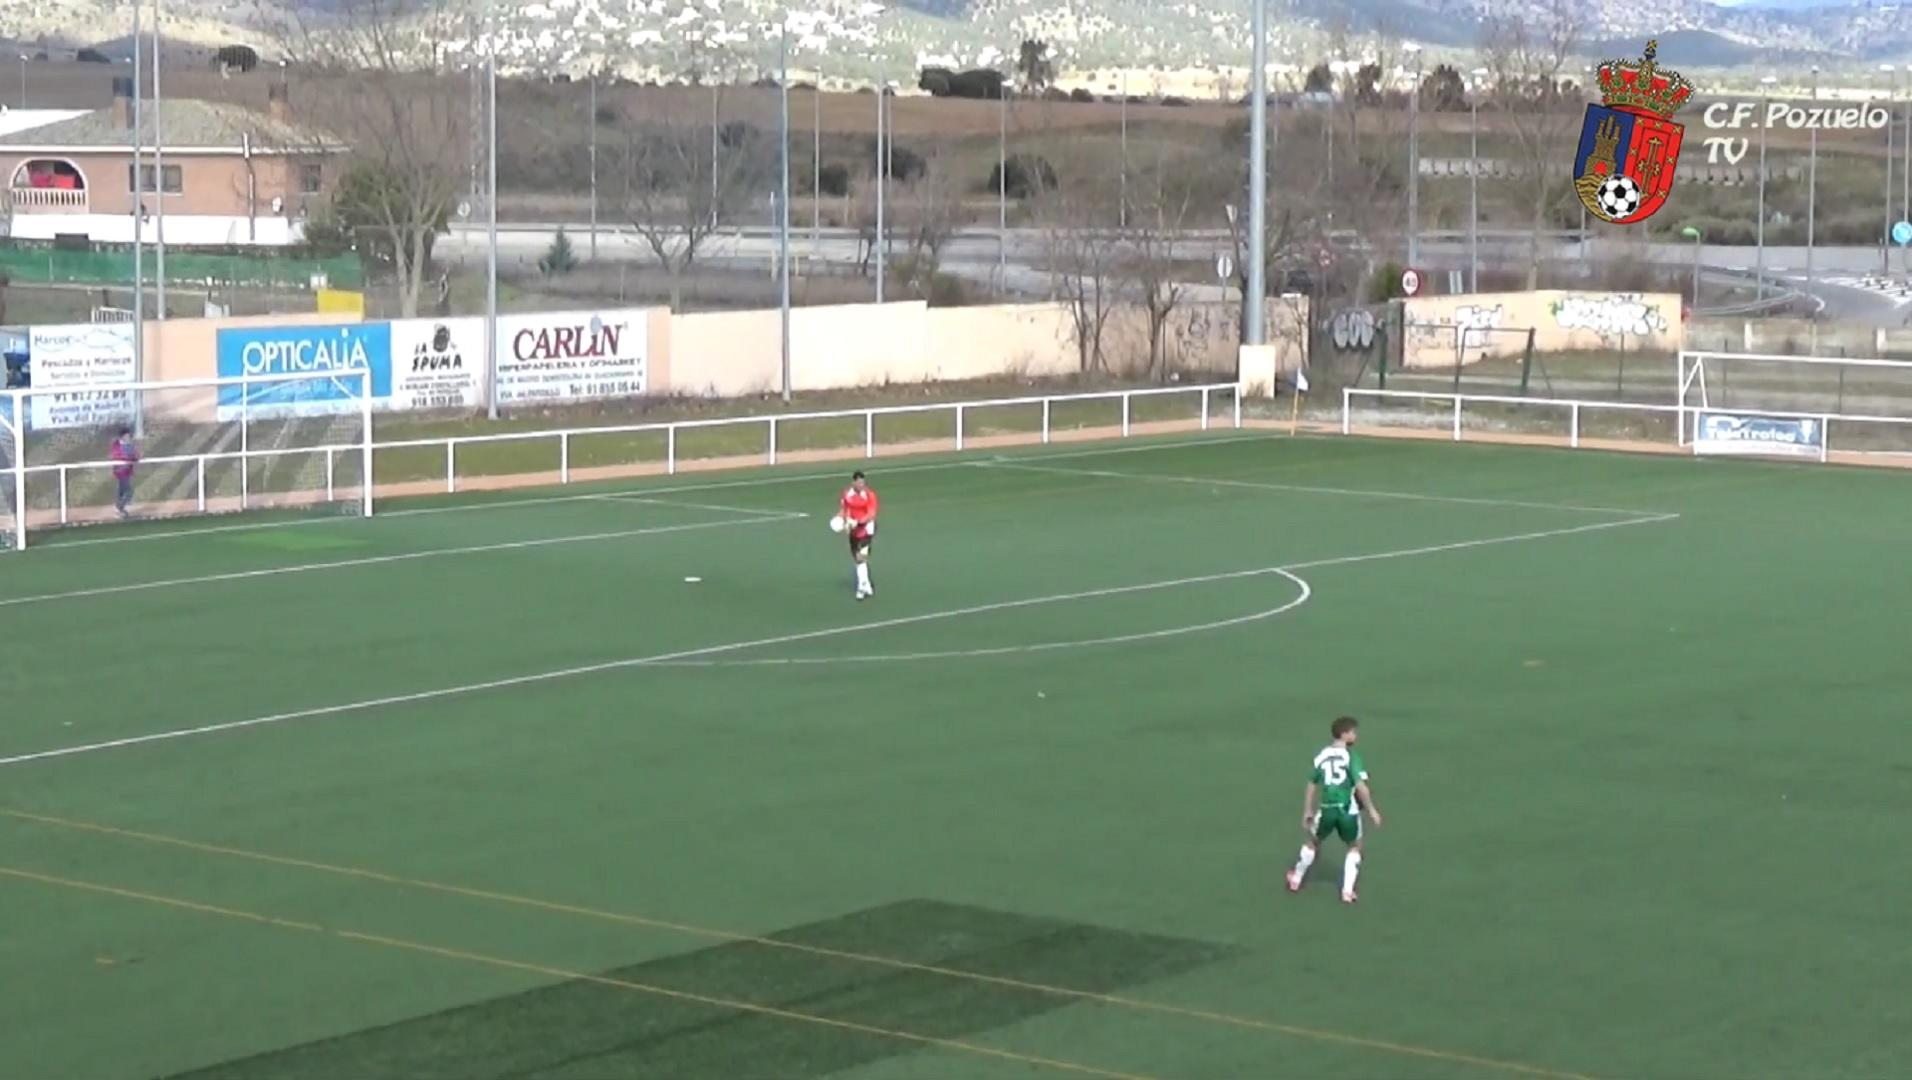 VIDEO: Goalkeeper scores spectacular goal from his own area